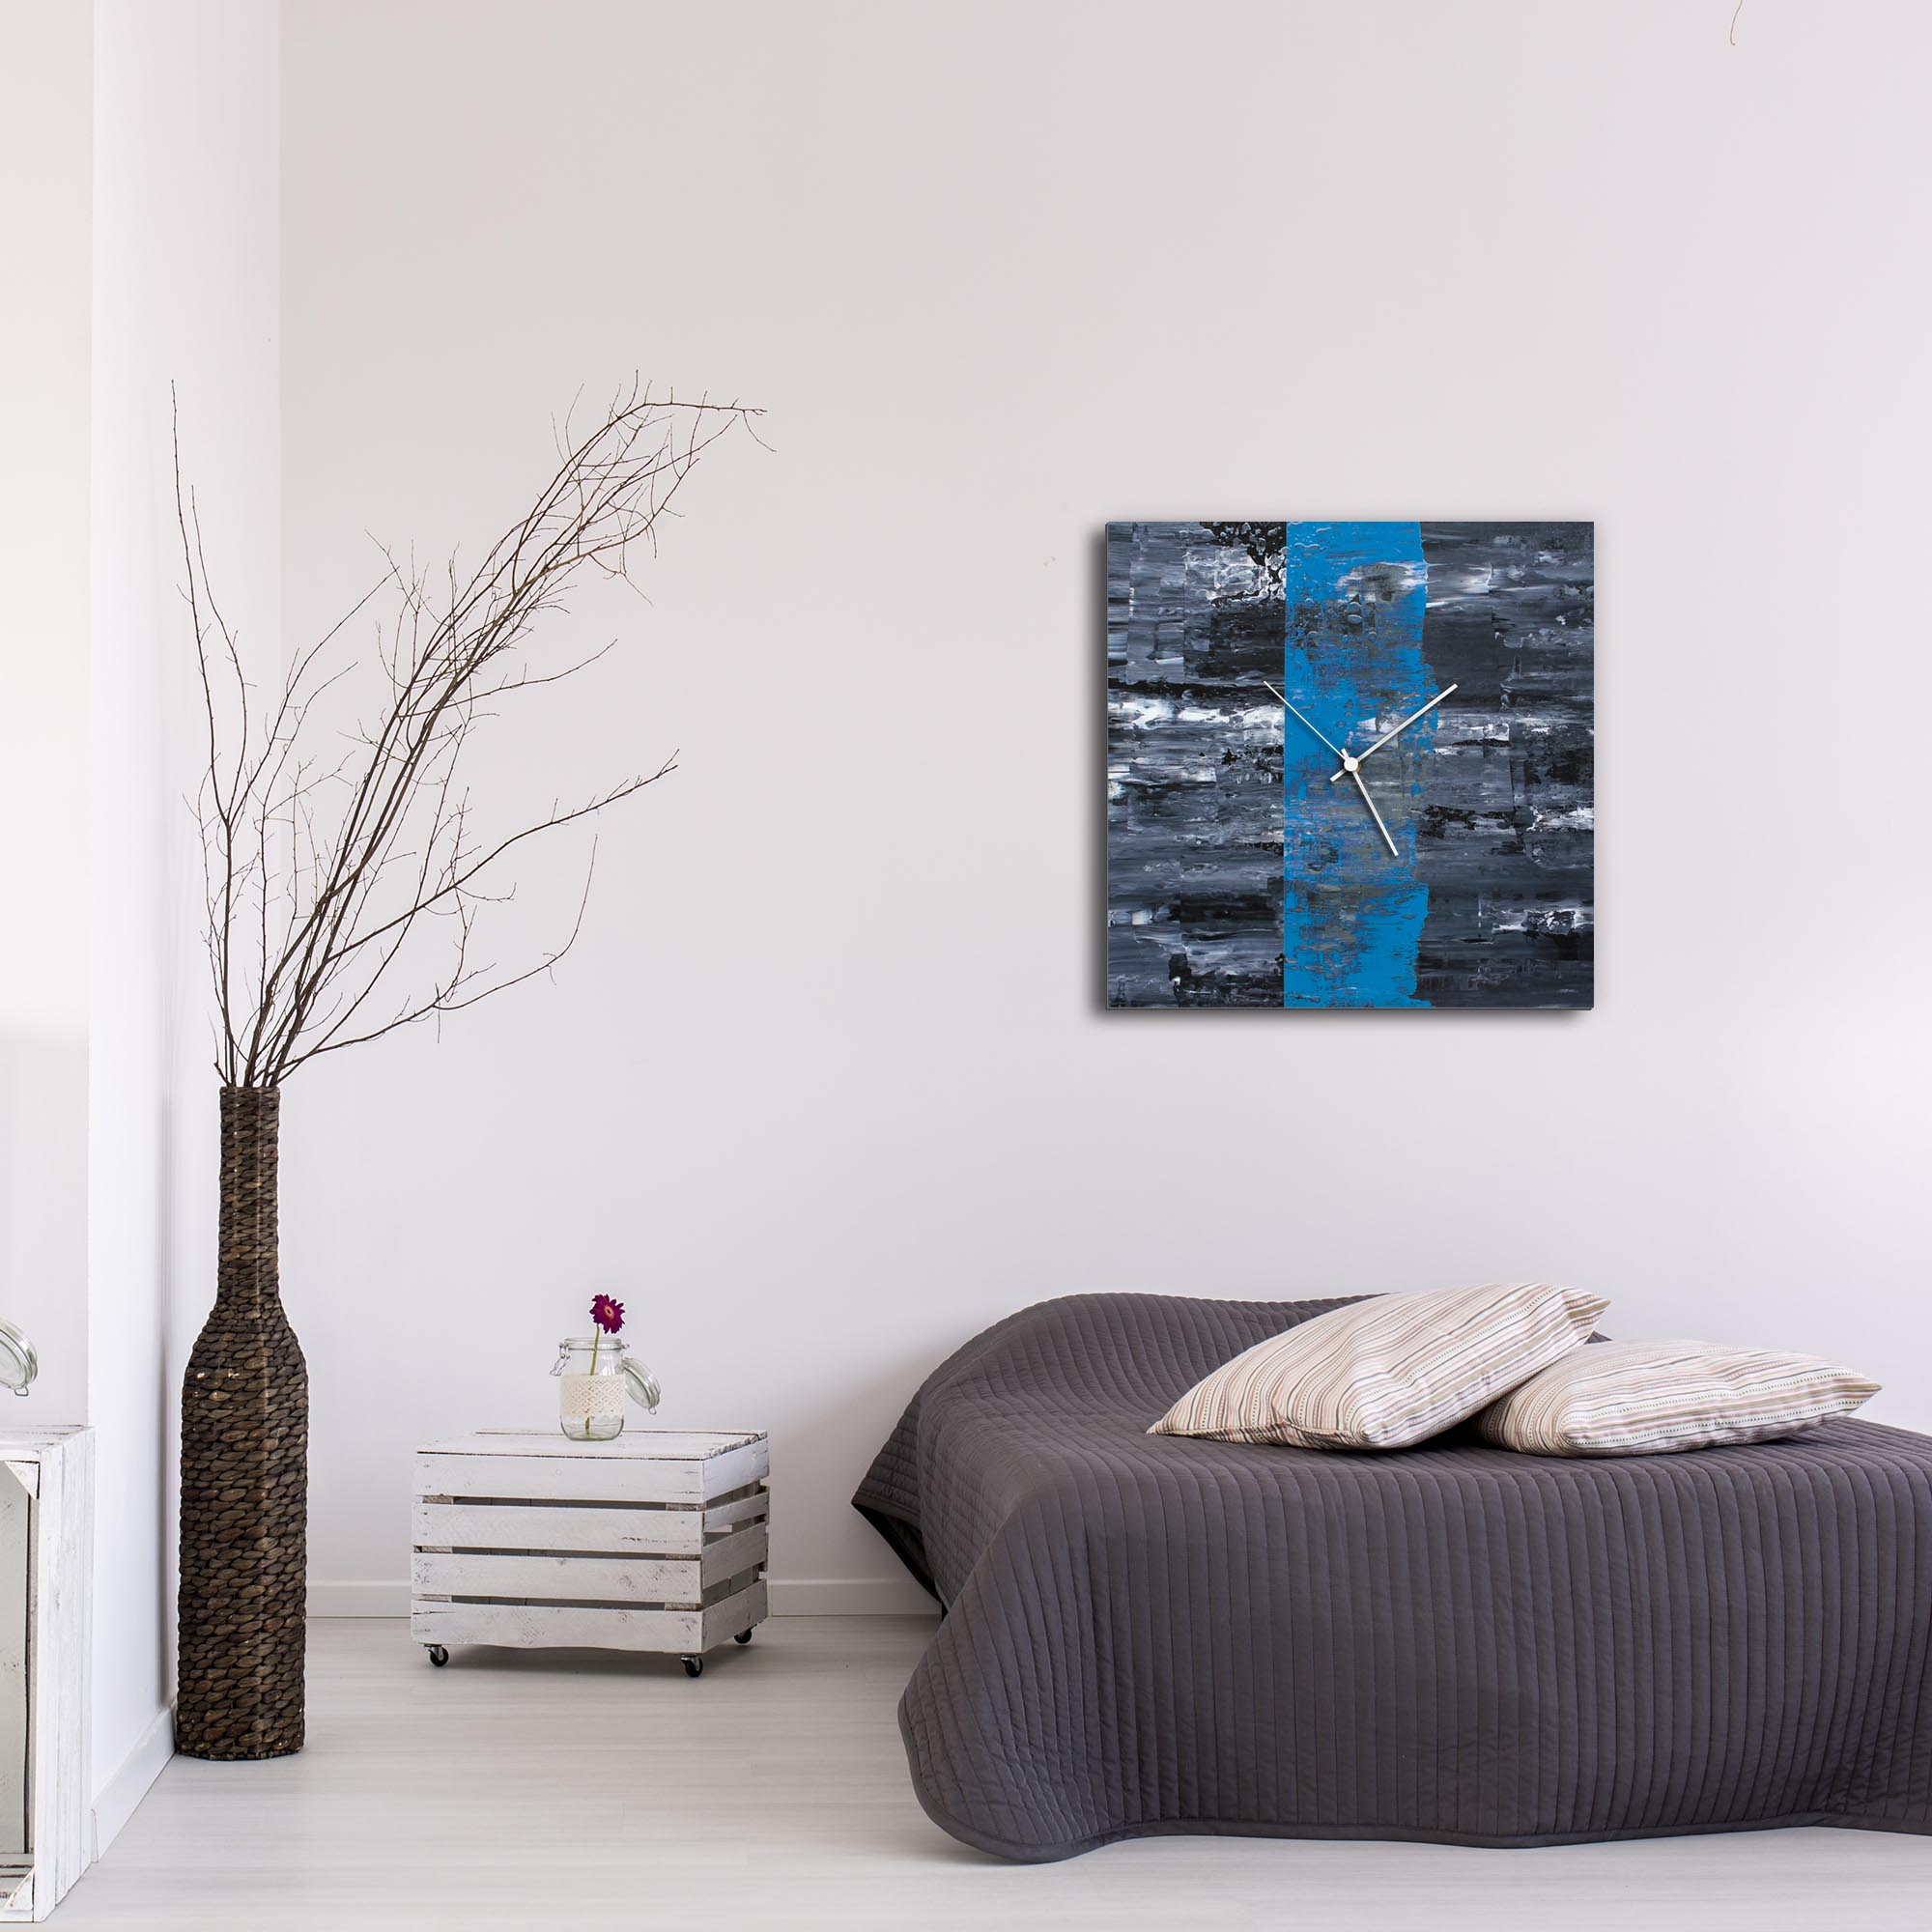 Blue Line Square Clock Large by Mendo Vasilevski - Urban Abstract Home Decor - Lifestyle View